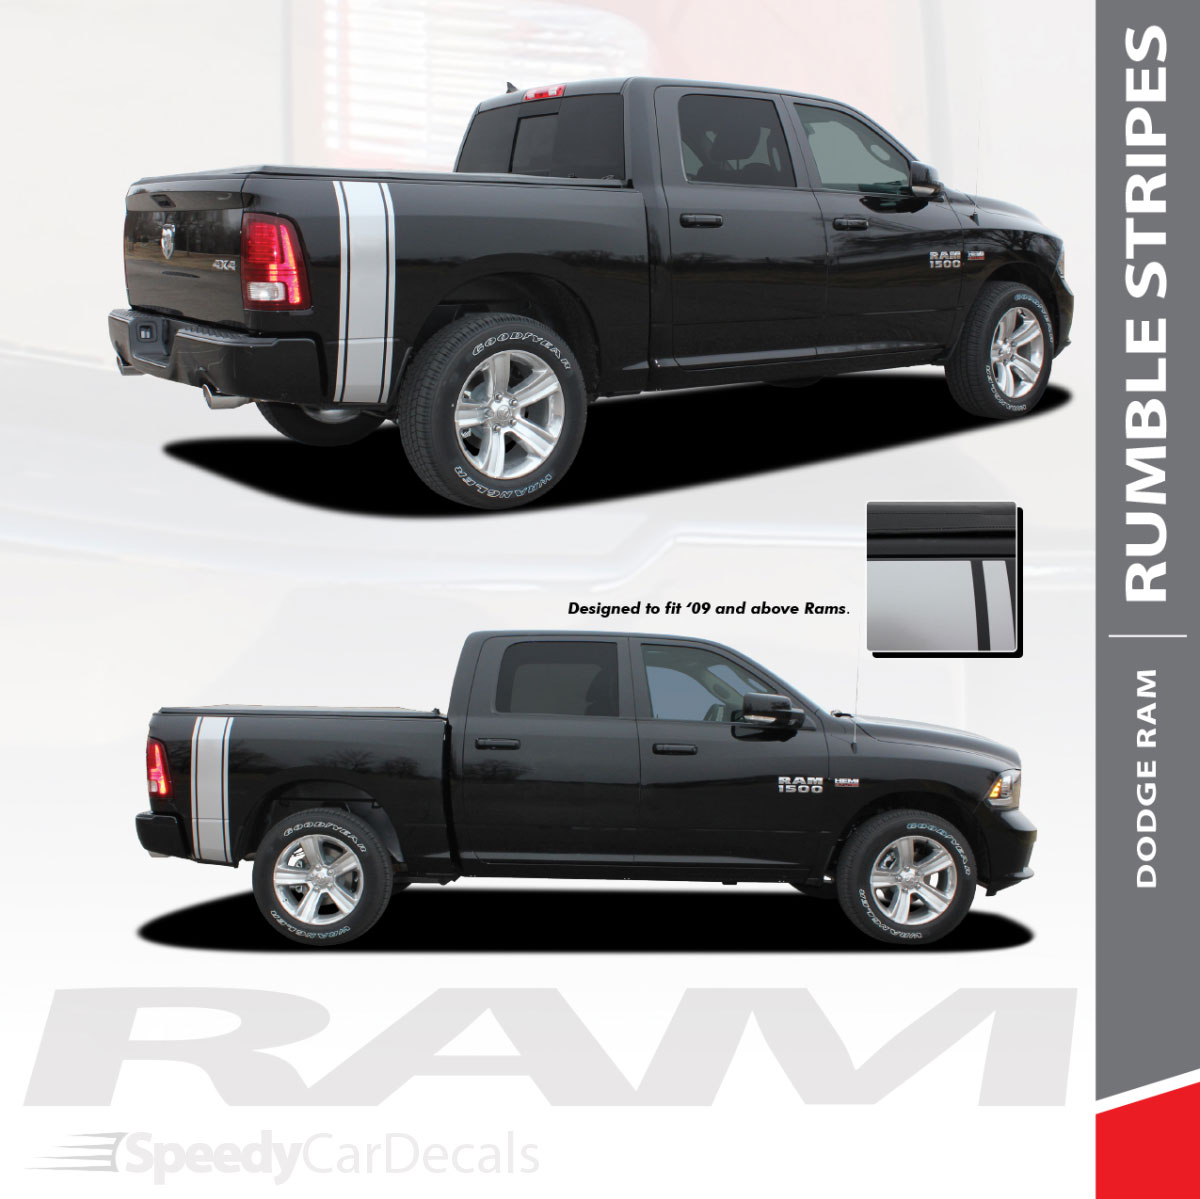 Rumble 2009 2018 dodge ram rear truck bed stripes vinyl graphics decals kit